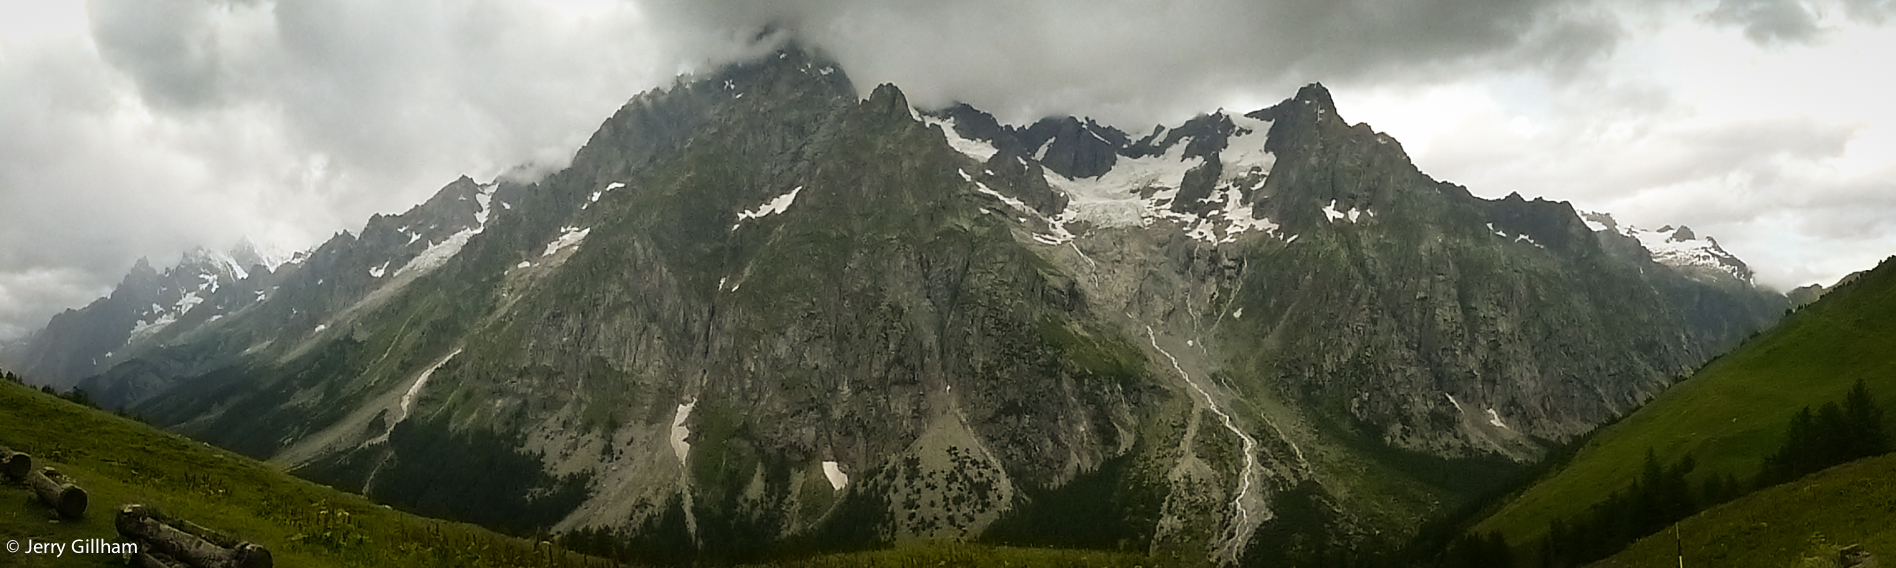 View of the Grande Jorasses from the Refuge Bonatti.